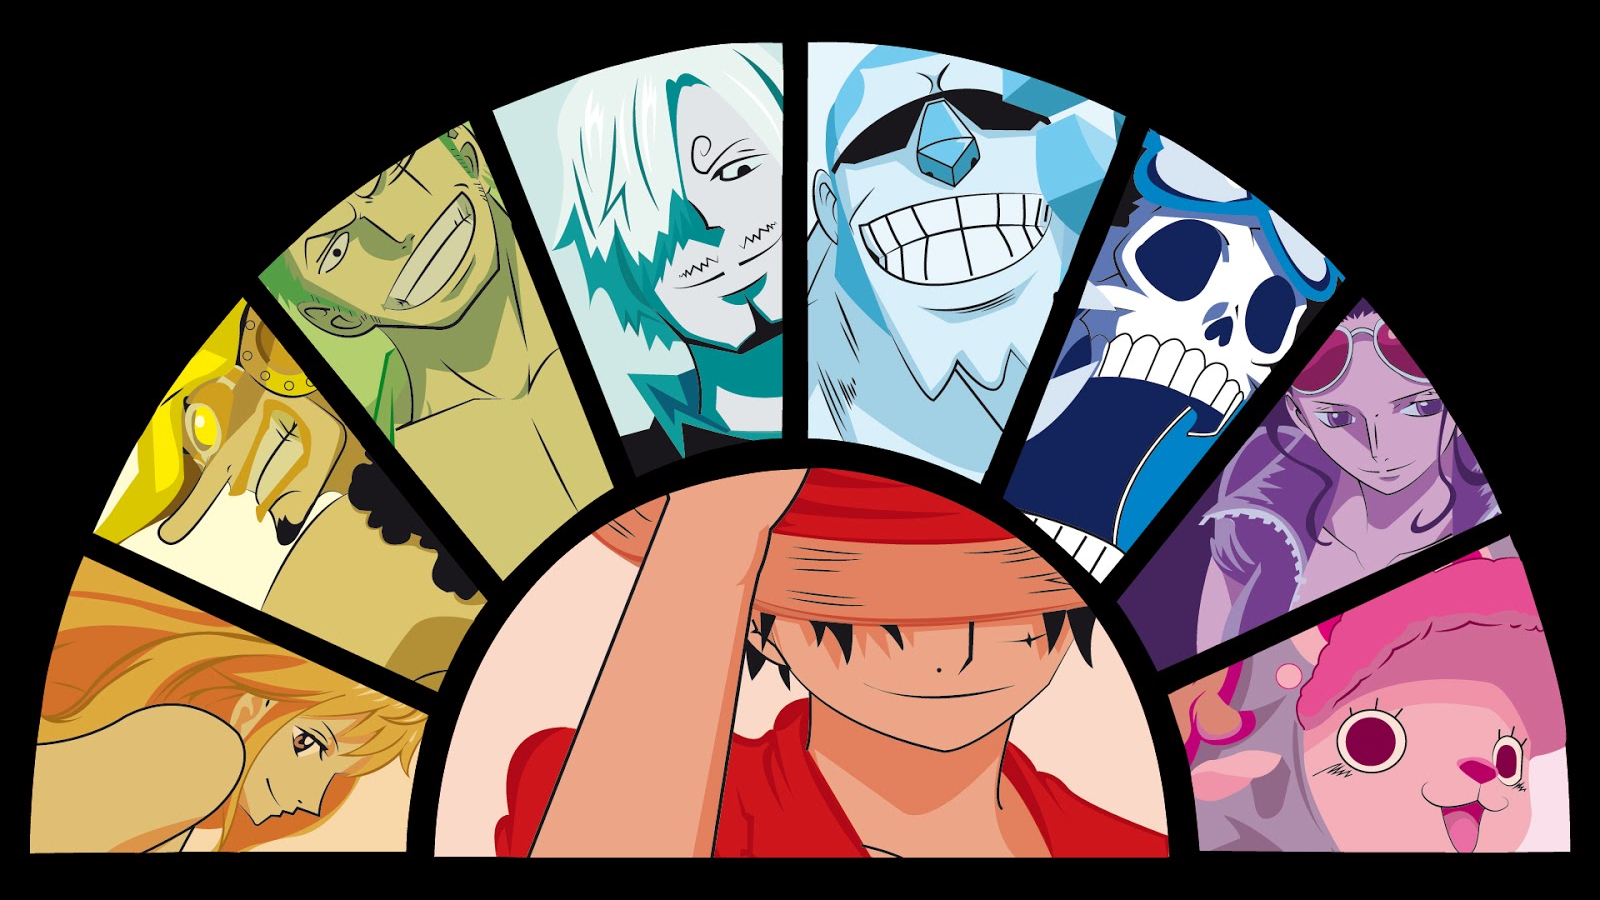 Free Download Luffy Anime One Piece Character Hd Wallpaper Desktop Pc Background 1600x1000 For Your Desktop Mobile Tablet Explore 49 One Piece Straw Hat Wallpaper One Piece Straw Hat